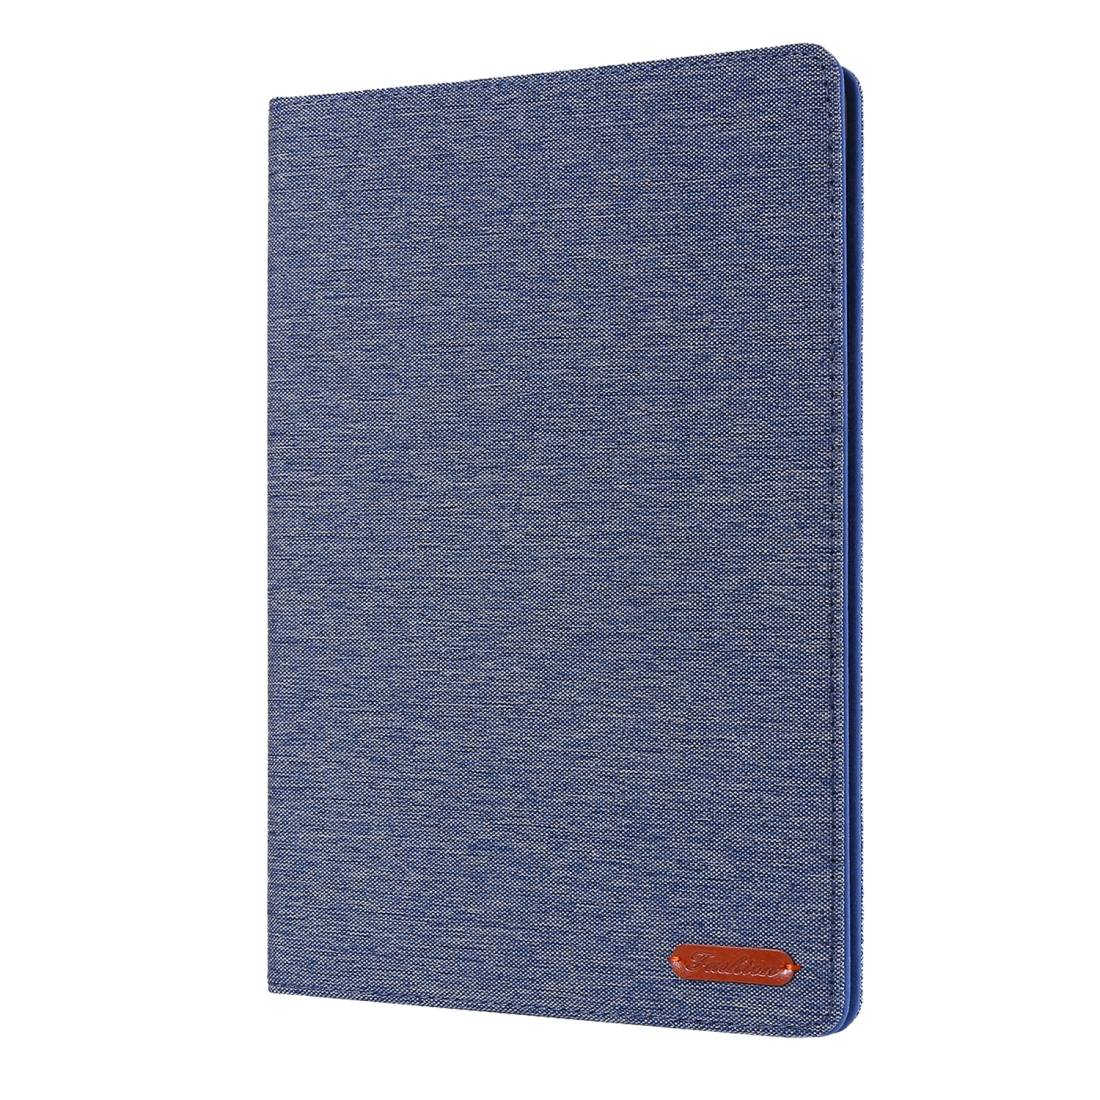 iPad 7th Generation Case (10.2 Inch) With A Durable Protective Design And Slim Profile (Deep Blue)